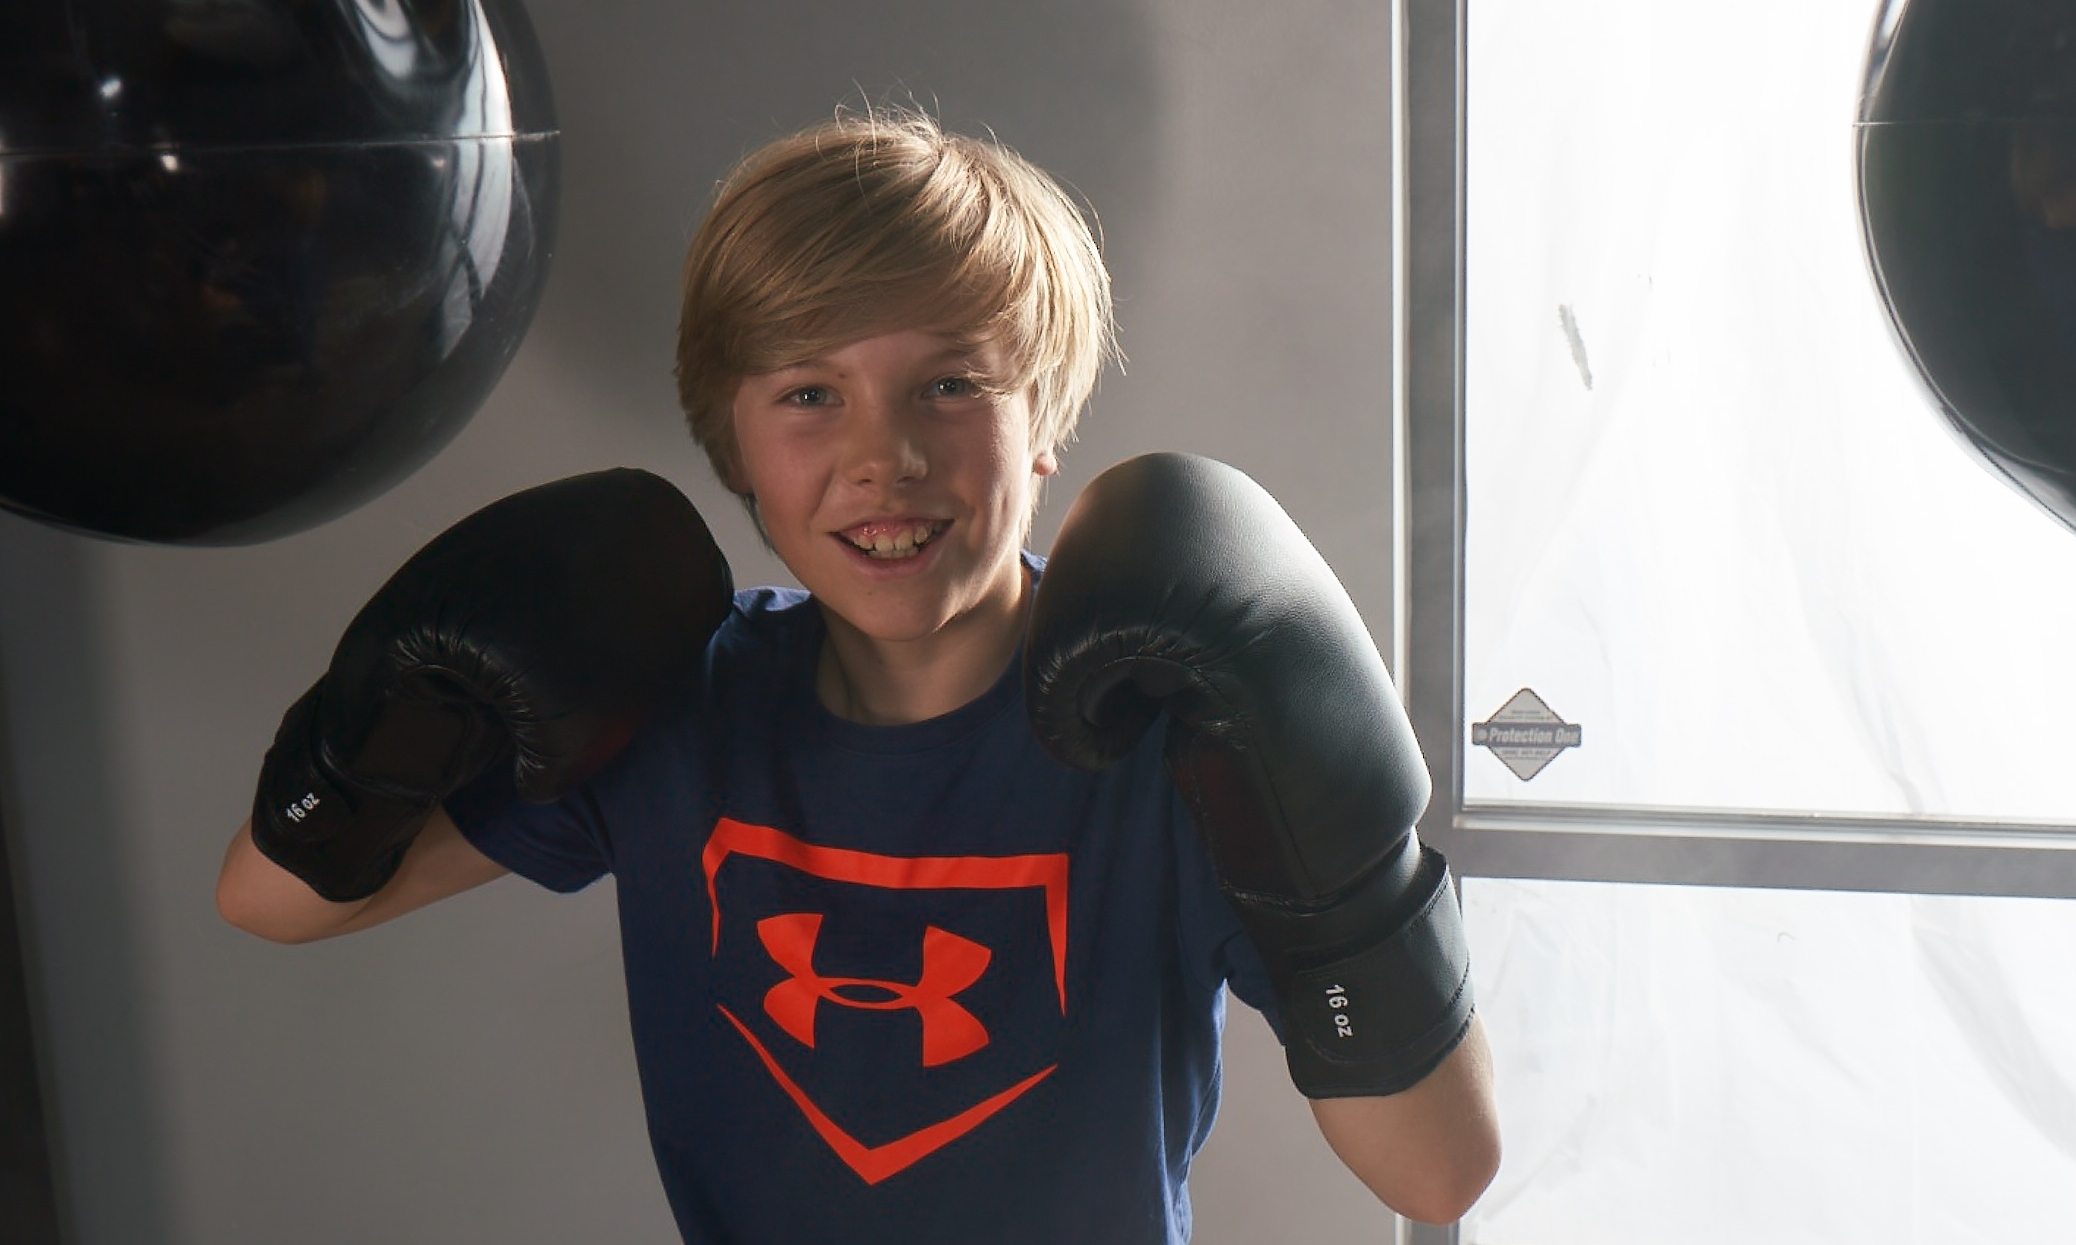 RISE Kids - Learn the fundamentals of footwork, combinations, and boxing, while building a foundation of athletic development, discipline and confidence that lasts for a lifetime. Optional contact (sparring) with parent permission. *for Elementary age